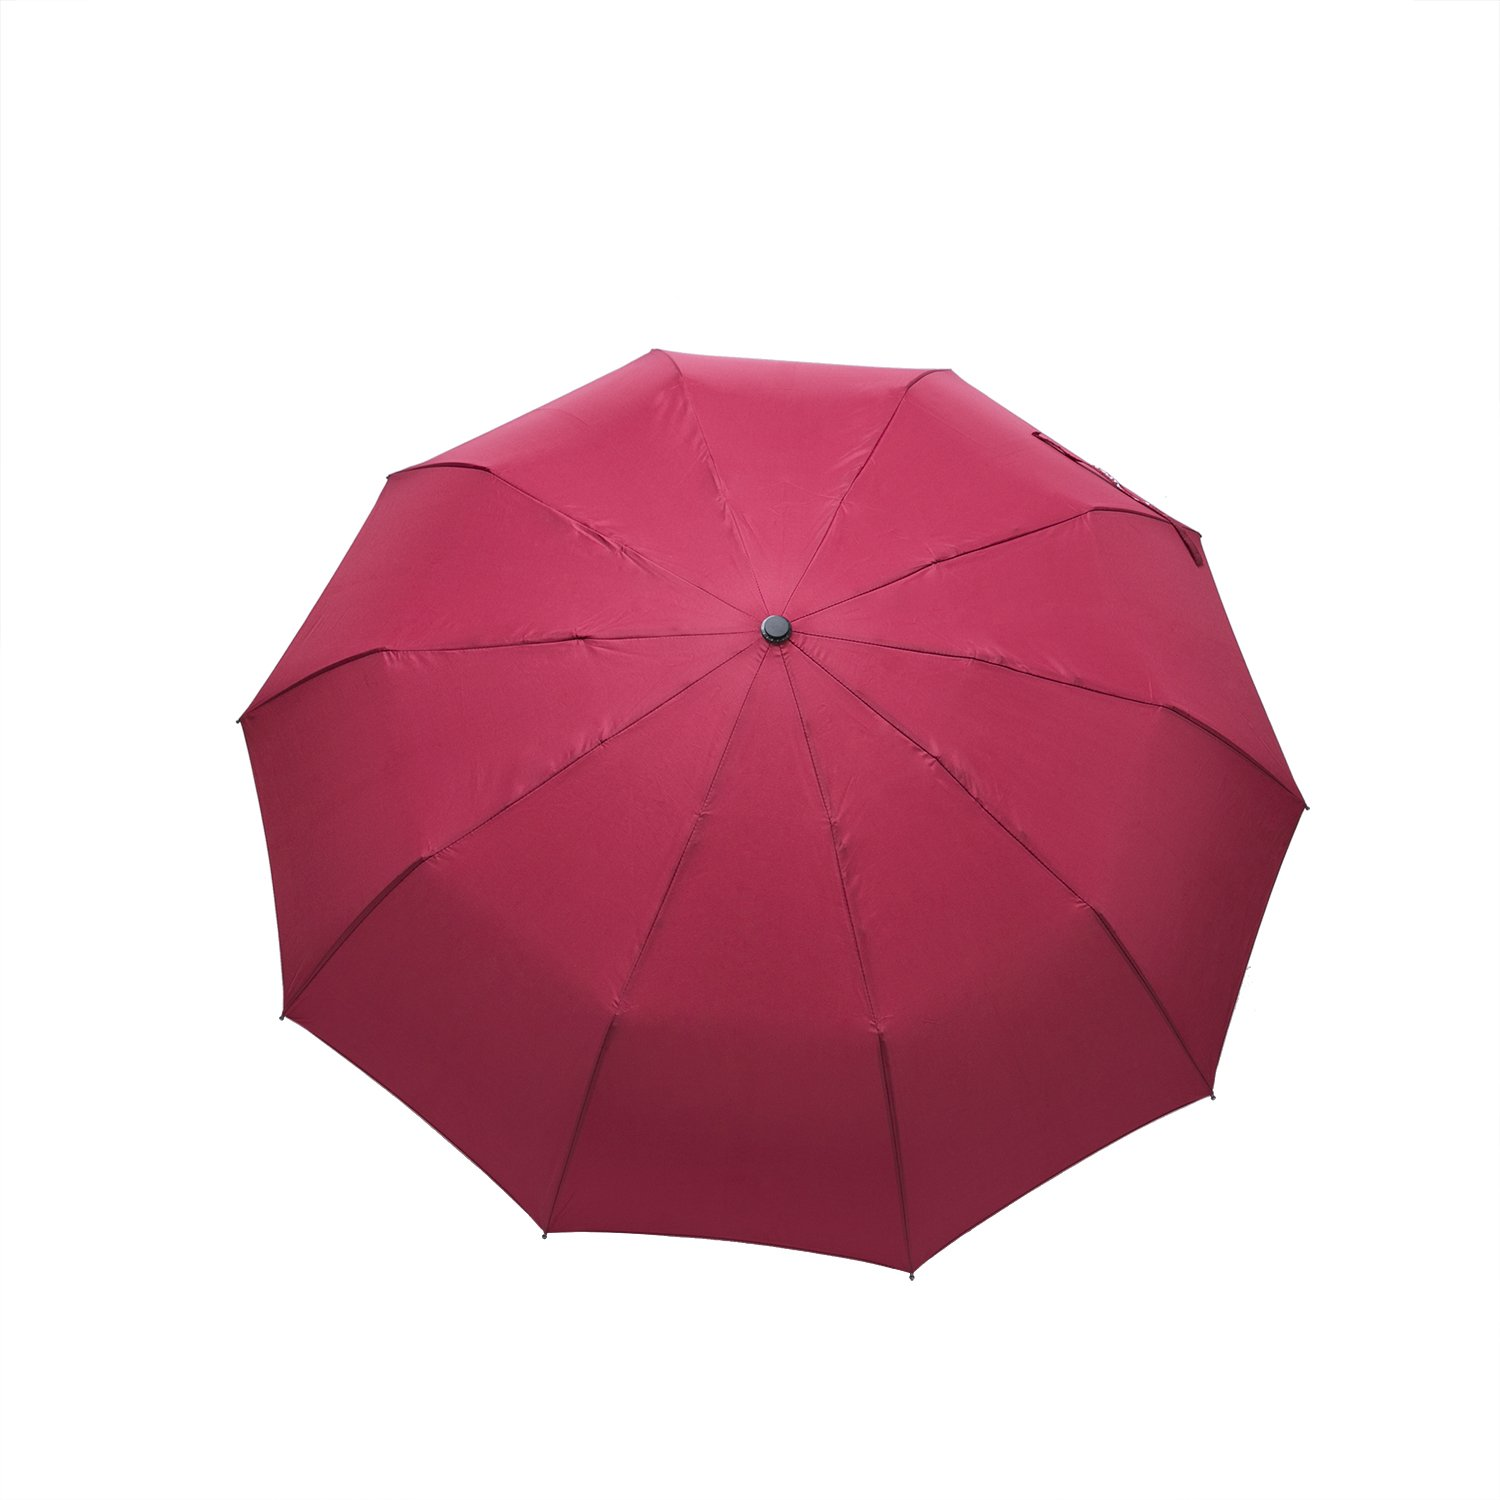 ROTERDON Windproof Travel Umbrella Folding - Small Compact Umbrella with Teflon Coating Auto Open/Close Reinforced Canopy Waterproof Pack for Luggage,Red by ROTERDON (Image #5)